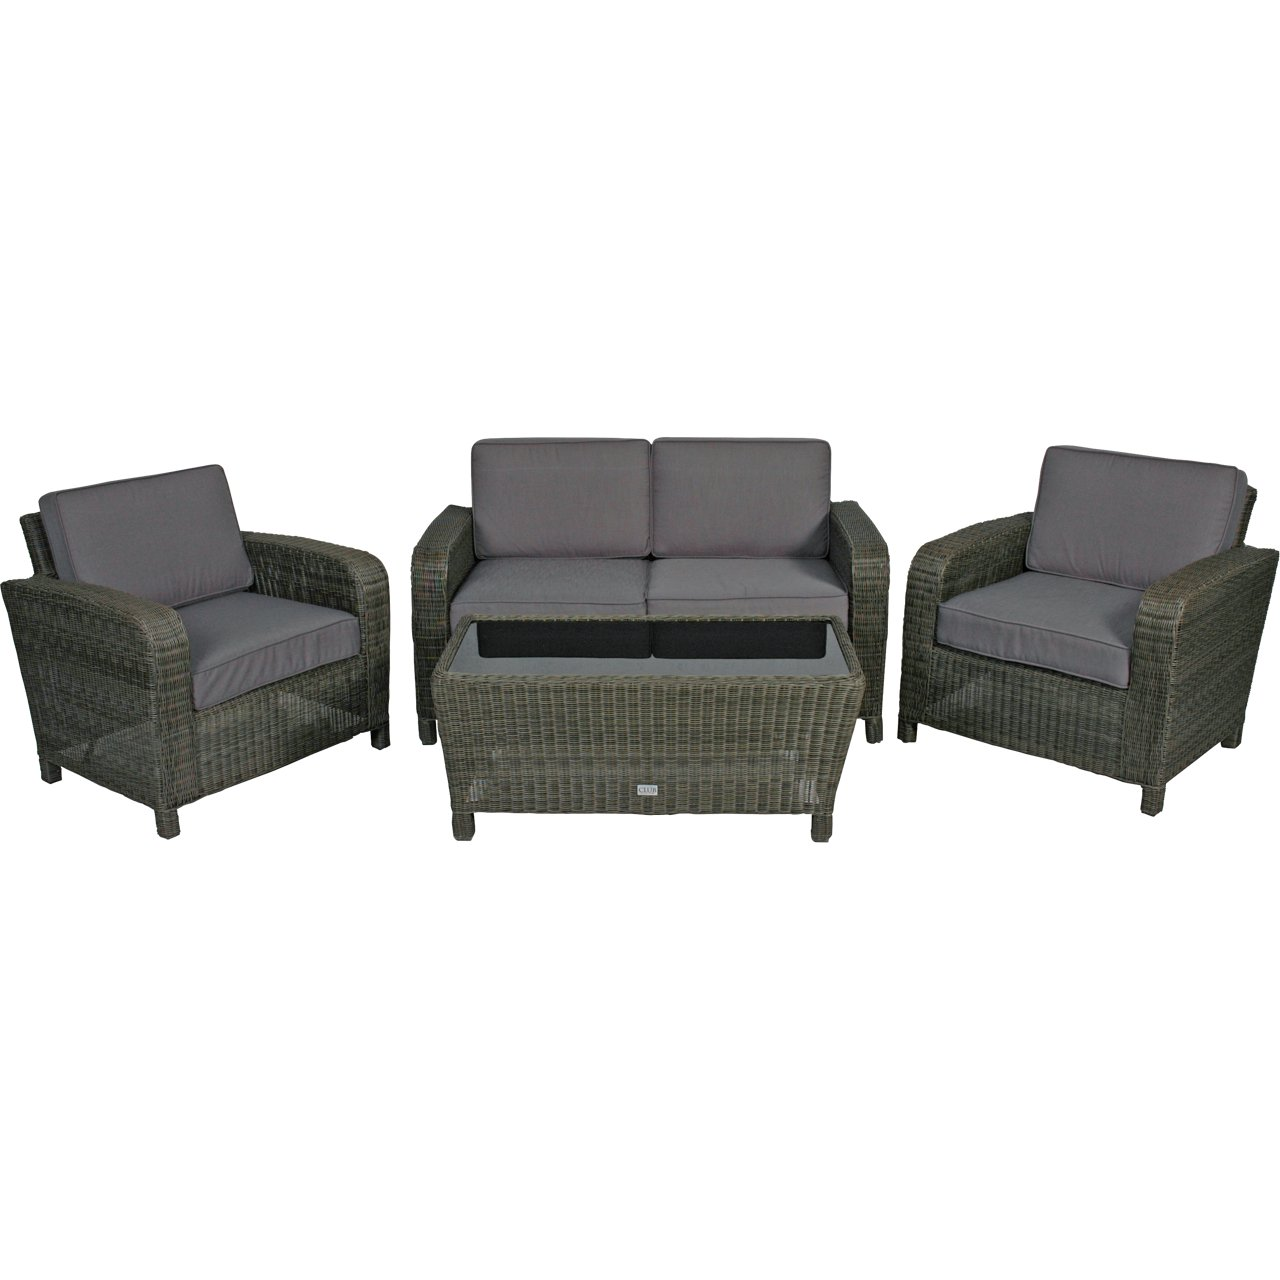 poly rattan lounge set 4tlg taupe gartenm bel tisch glasplatte g nstig online kaufen. Black Bedroom Furniture Sets. Home Design Ideas